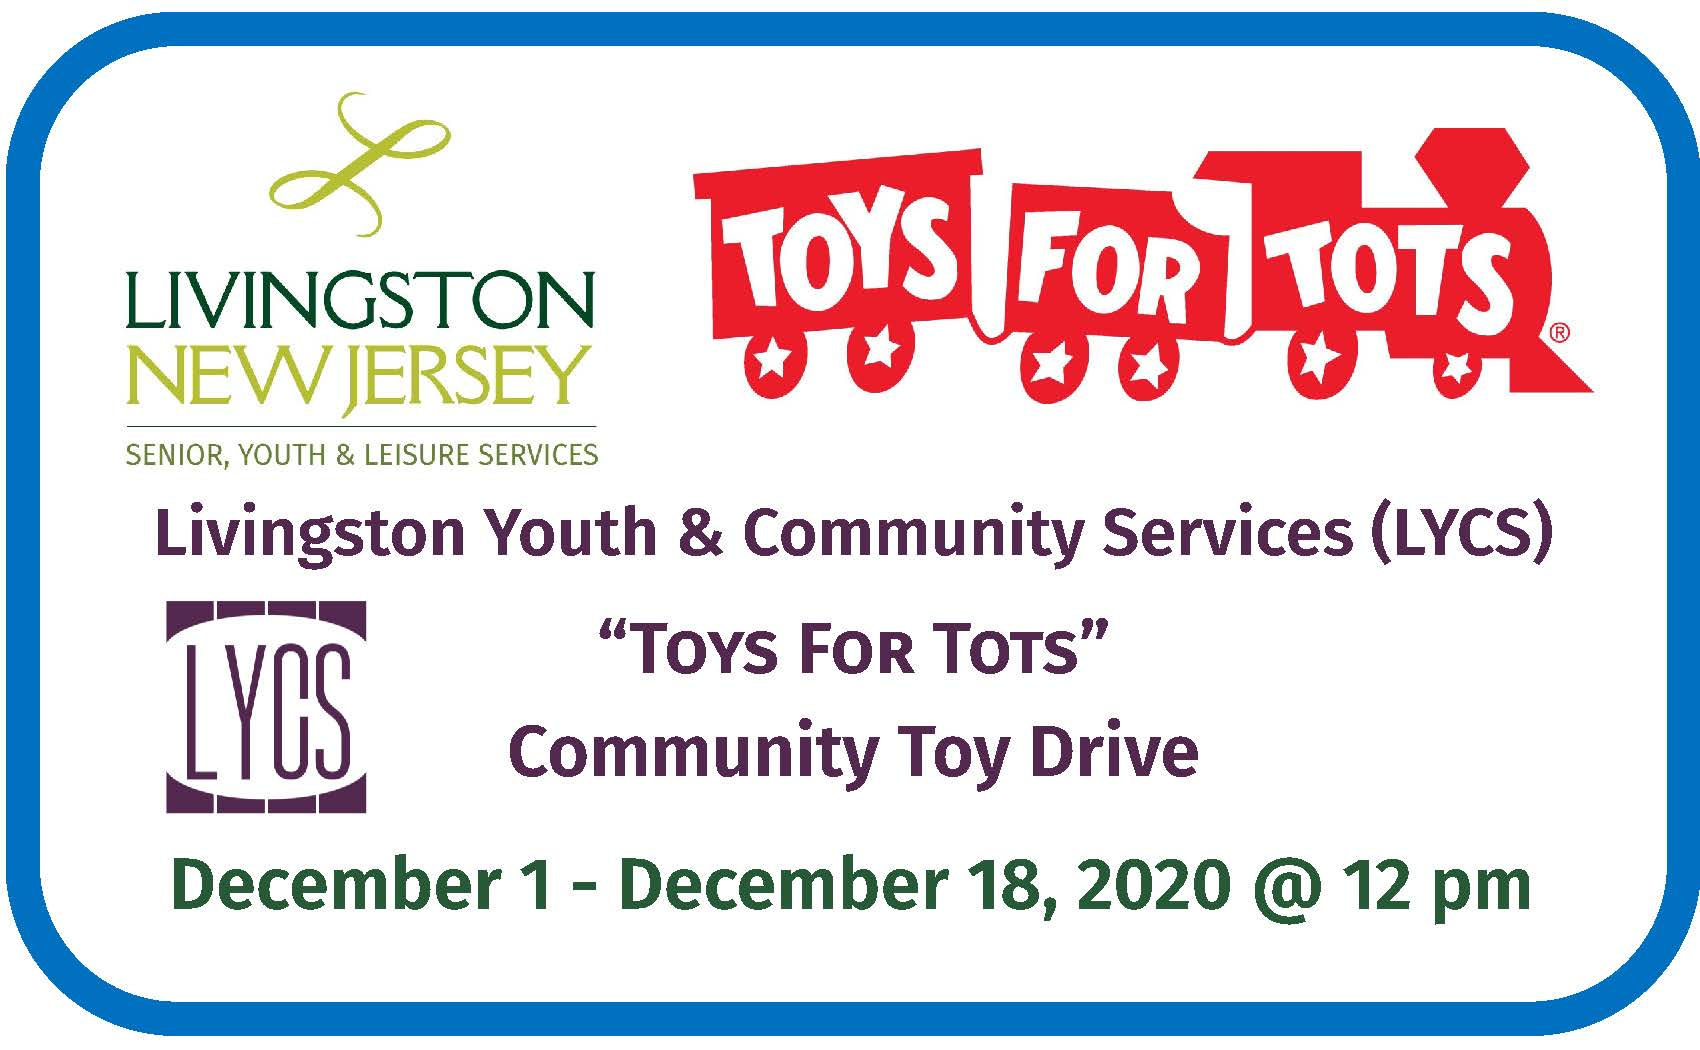 Toys for tots banner 2020